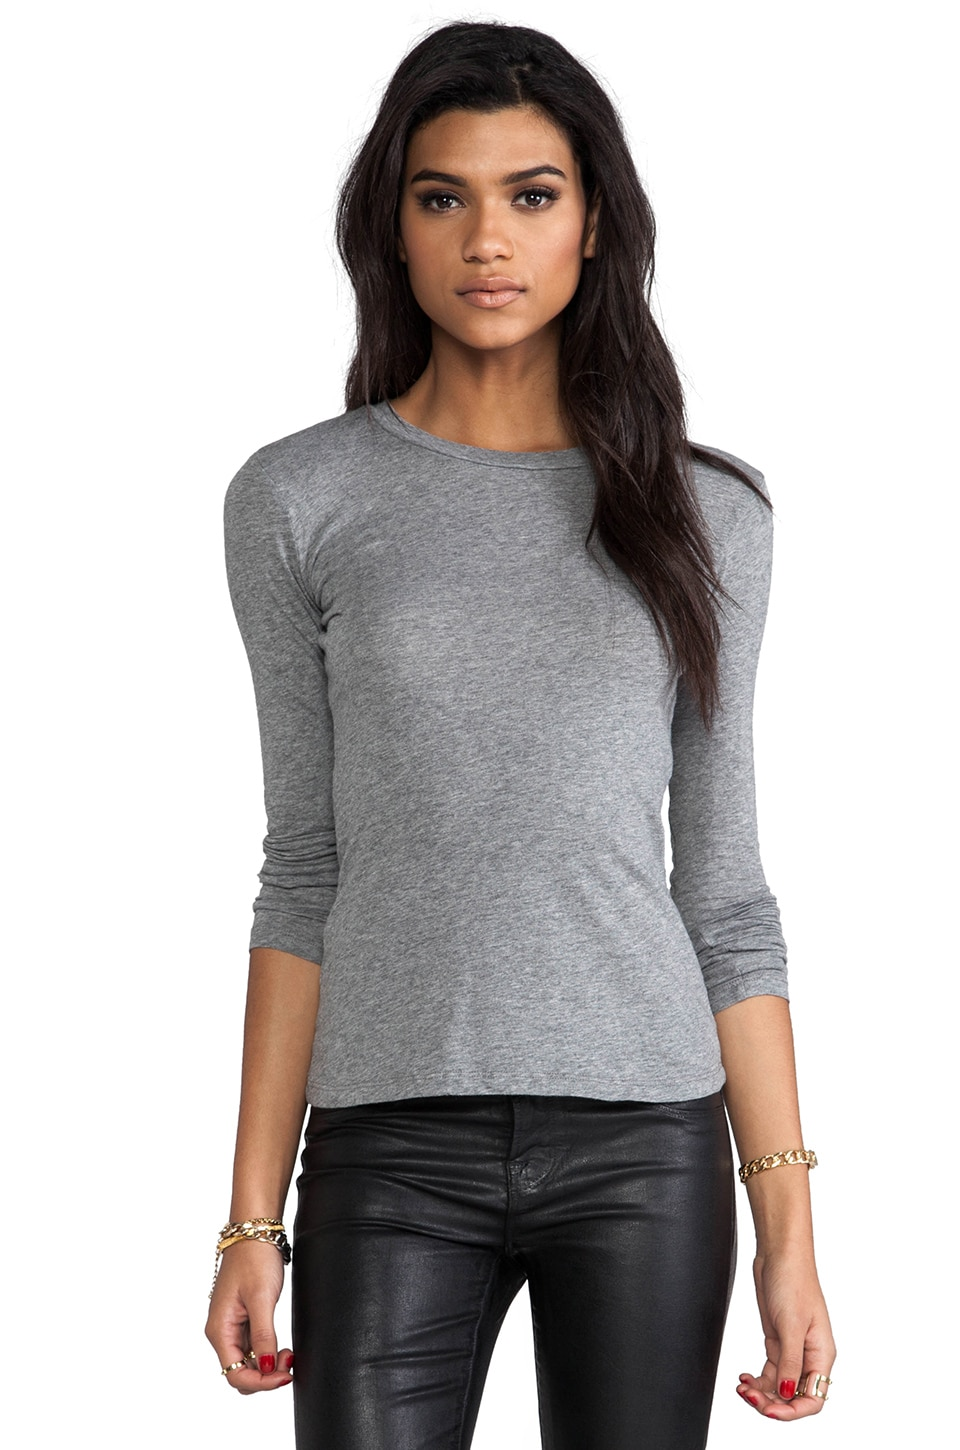 Bobi Light Weight Jersey Crew Neck Tee in Thunder